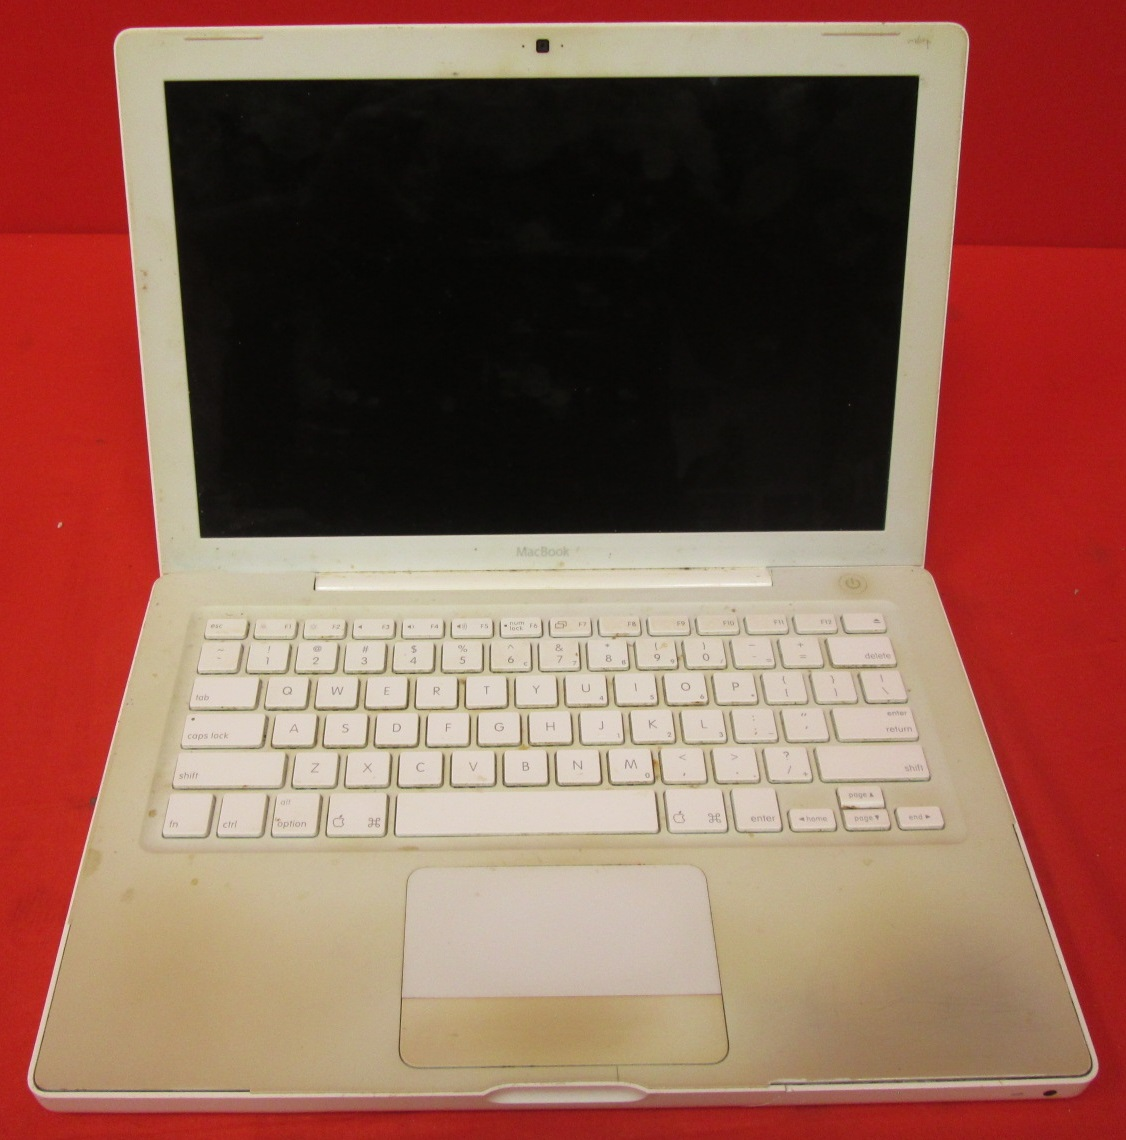 Broken Apple White Macbook 13 Inch 2006 MA255LL/A Laptop